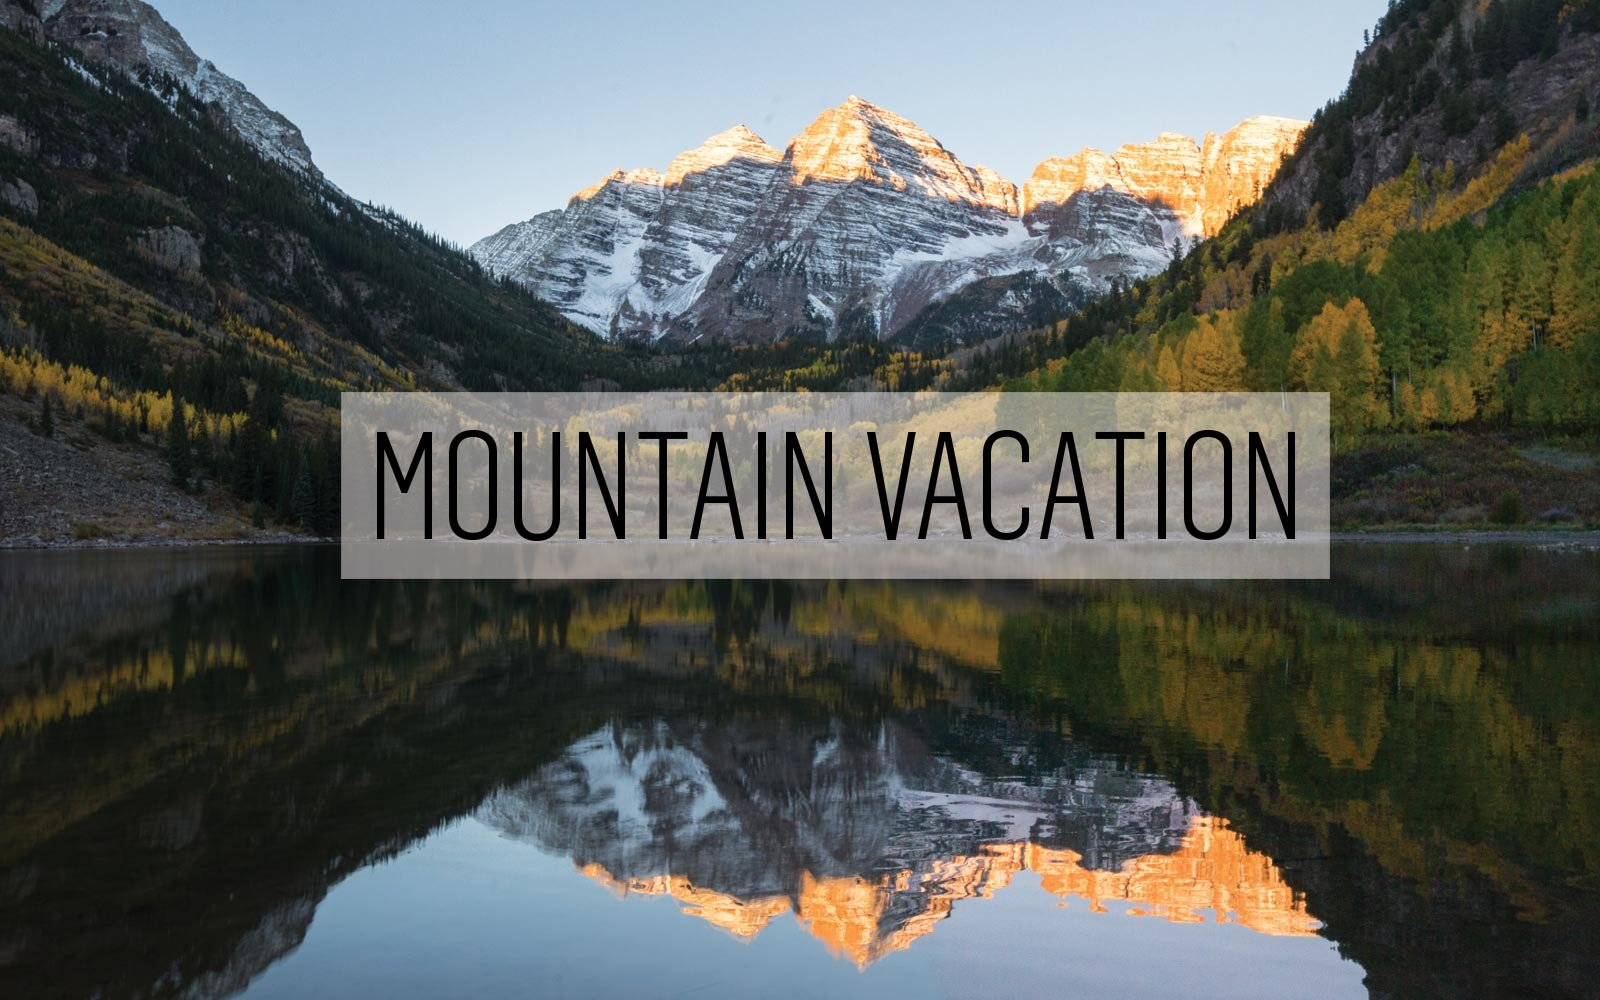 Mountain Vacation